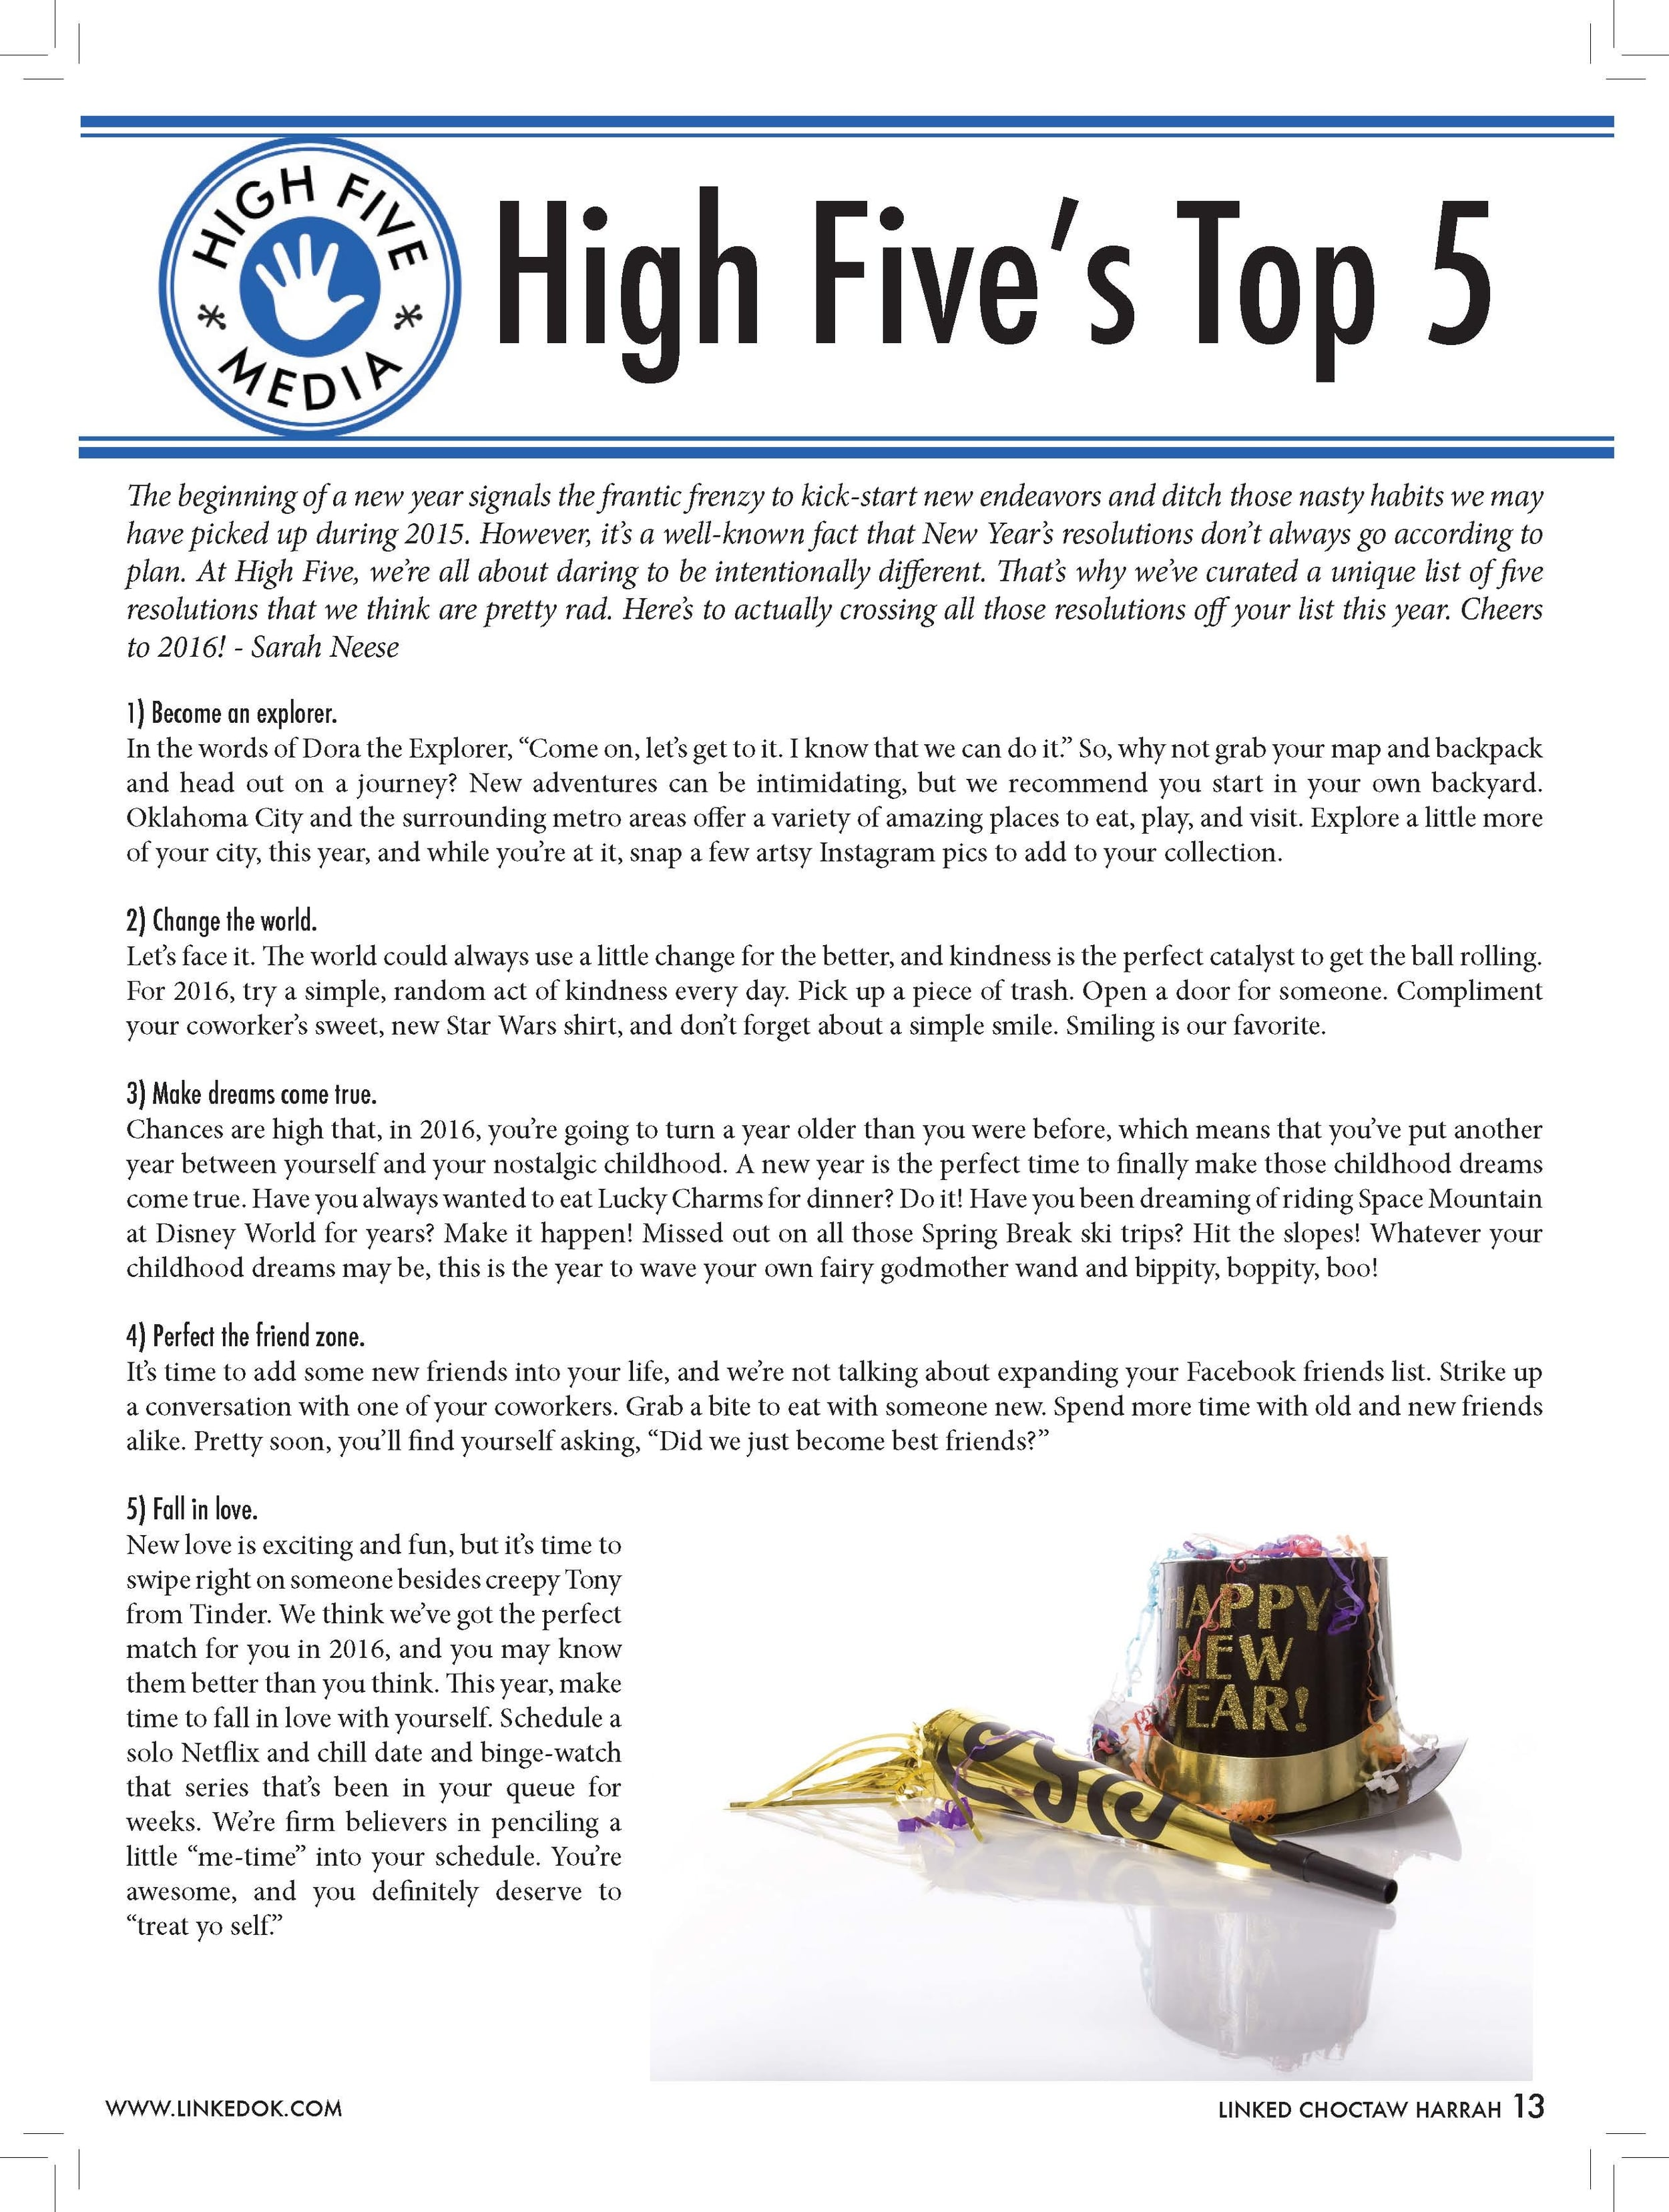 """High Five's Top 5  The beginning of a new year signals the frantic frenzy to kick-start new endeavors and ditch those nasty habits we may have picked up during 2015. However, it's a well-known fact that New Year's resolutions don't always go according to plan. At High Five, we're all about daring to be intentionally different. That's why we've curated a unique list of five resolutions that we think are pretty rad. Here's to actually crossing all those resolutions off your list this year. Cheers to 2016! - Sarah Neese  1) Become an explorer. In the words of Dora the Explorer, """"Come on, let's get to it. I know that we can do it."""" So, why not grab your map and backpack and head out on a journey? New adventures can be intimidating, but we recommend you start in your own backyard. Oklahoma City and the surrounding metro areas offer a variety of amazing places to eat, play, and visit. Explore a little more of your city, this year, and while you're at it, snap a few artsy Instagram pics to add to your collection. 2) Change the world. Let's face it. The world could always use a little change for the better, and kindness is the perfect catalyst to get the ball rolling. For 2016, try a simple, random act of kindness every day. Pick up a piece of trash. Open a door for someone. Compliment your coworker's sweet, new Star Wars shirt, and don't forget about a simple smile. Smiling is our favorite. 3) Make dreams come true. Chances are high that, in 2016, you're going to turn a year older than you were before, which means that you've put another year between yourself and your nostalgic childhood. A new year is the perfect time to finally make those childhood dreams come true. Have you always wanted to eat Lucky Charms for dinner? Do it! Have you been dreaming of riding Space Mountain at Disney World for years? Make it happen! Missed out on all those Spring Break ski trips? Hit the slopes! Whatever your childhood dreams may be, this is the year to wave your own fairy godmother wand"""